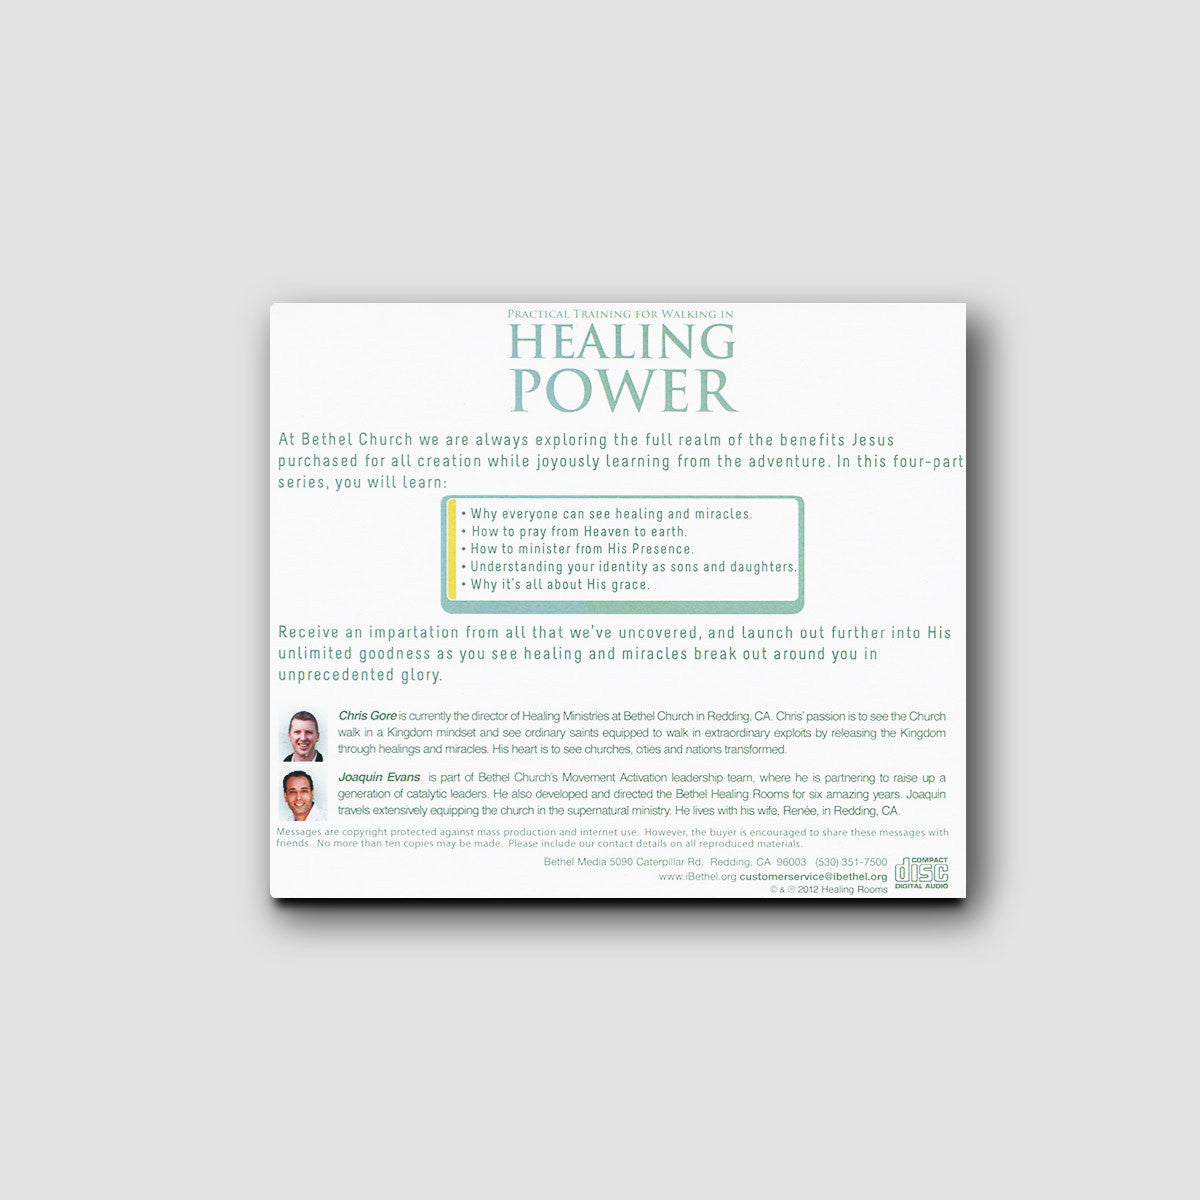 Practical Training for Walking in Healing Power